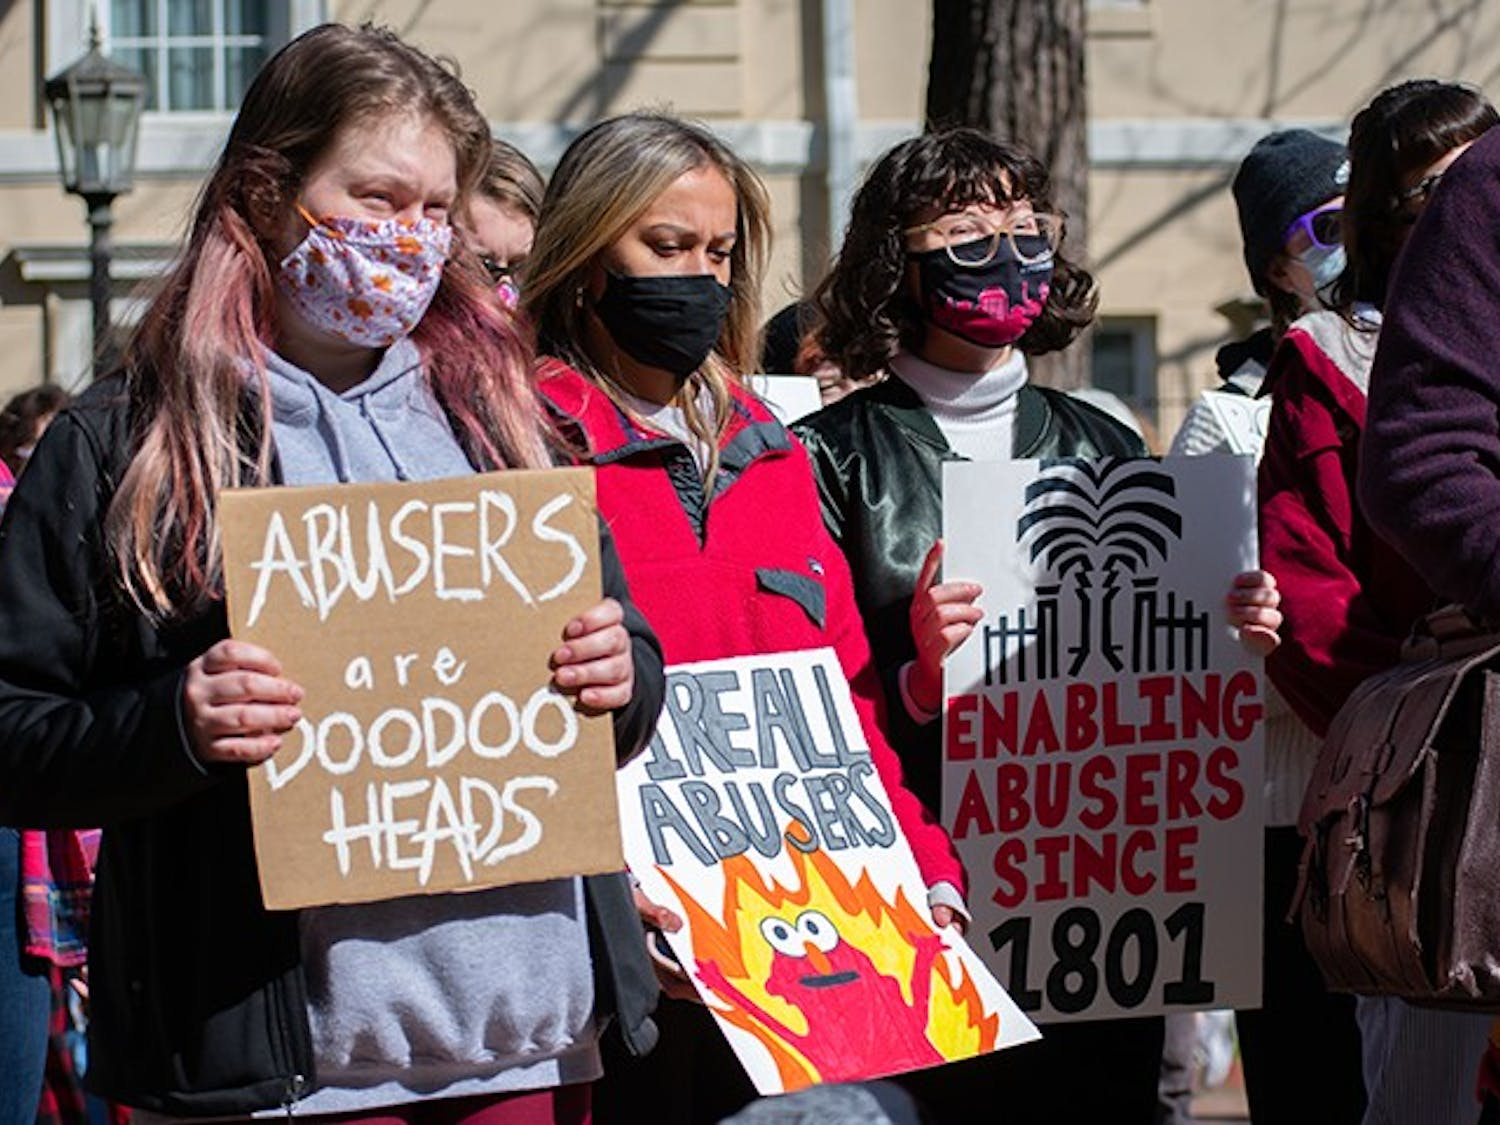 Students bring signs to protest the university's lack of response toward the numerous acts of sexual assault and violence committed by David Voros and several other staff members